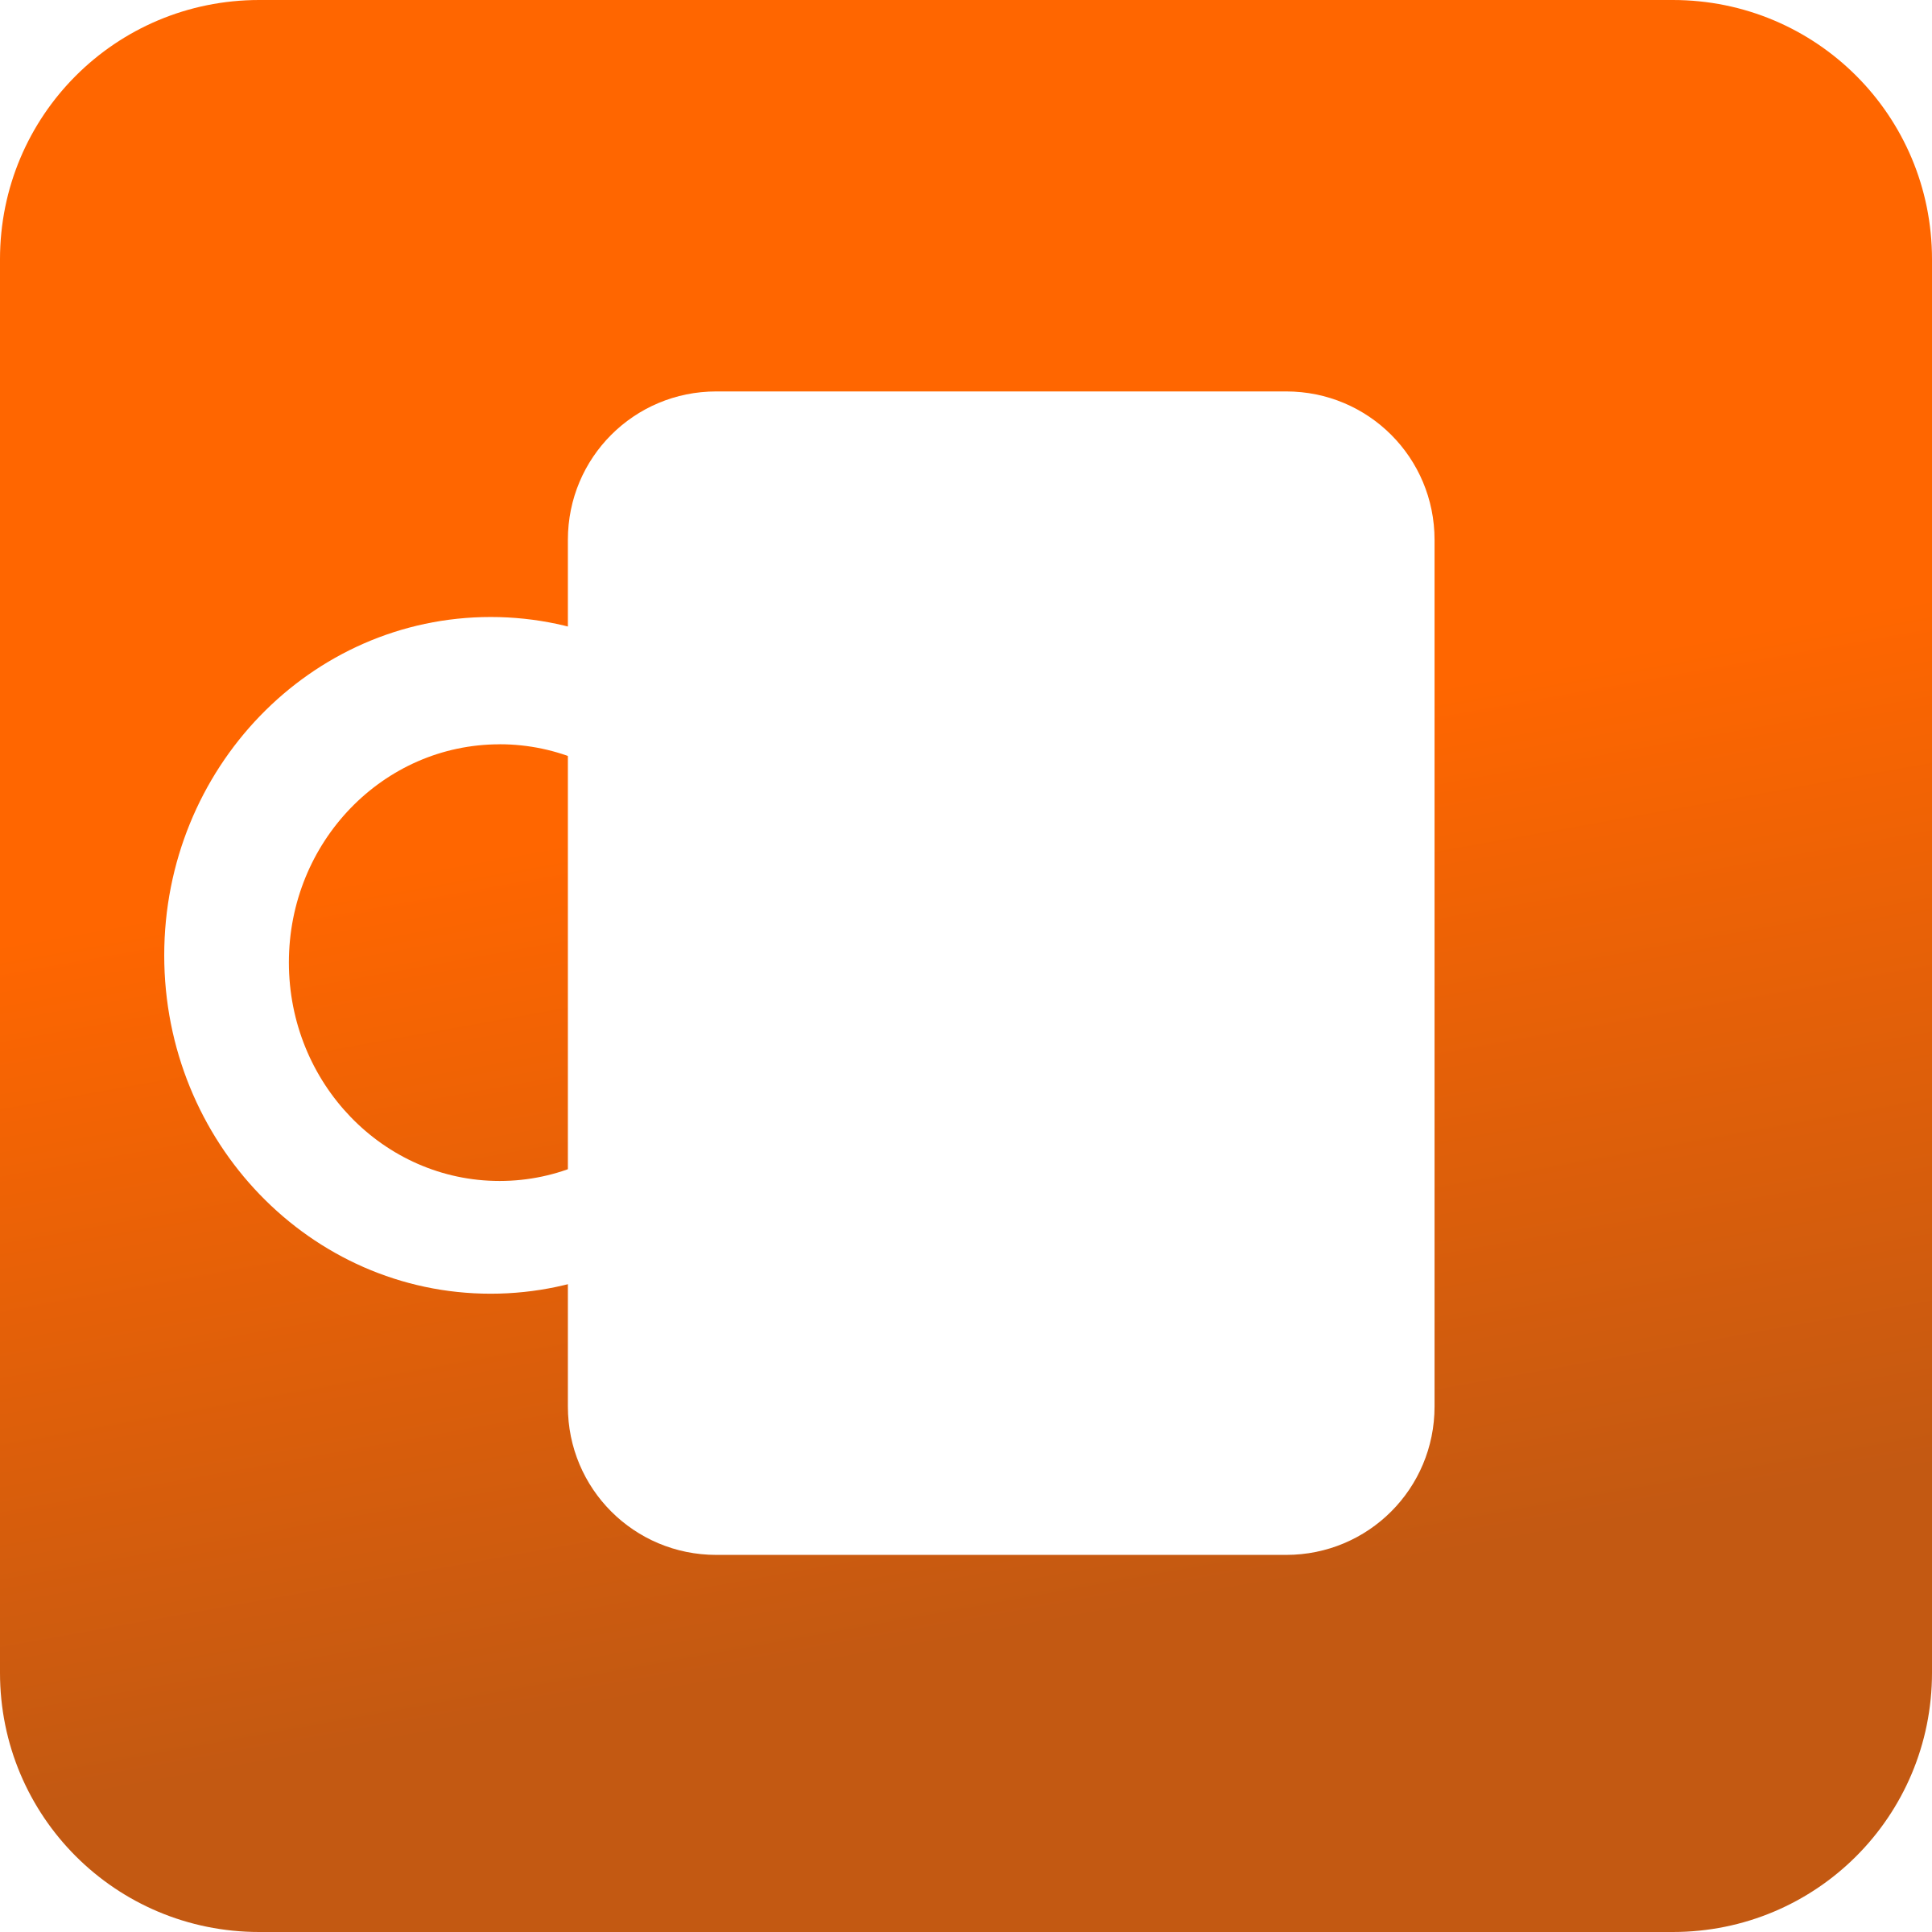 Coffee mug icon - Orange BAckground by angelascanio